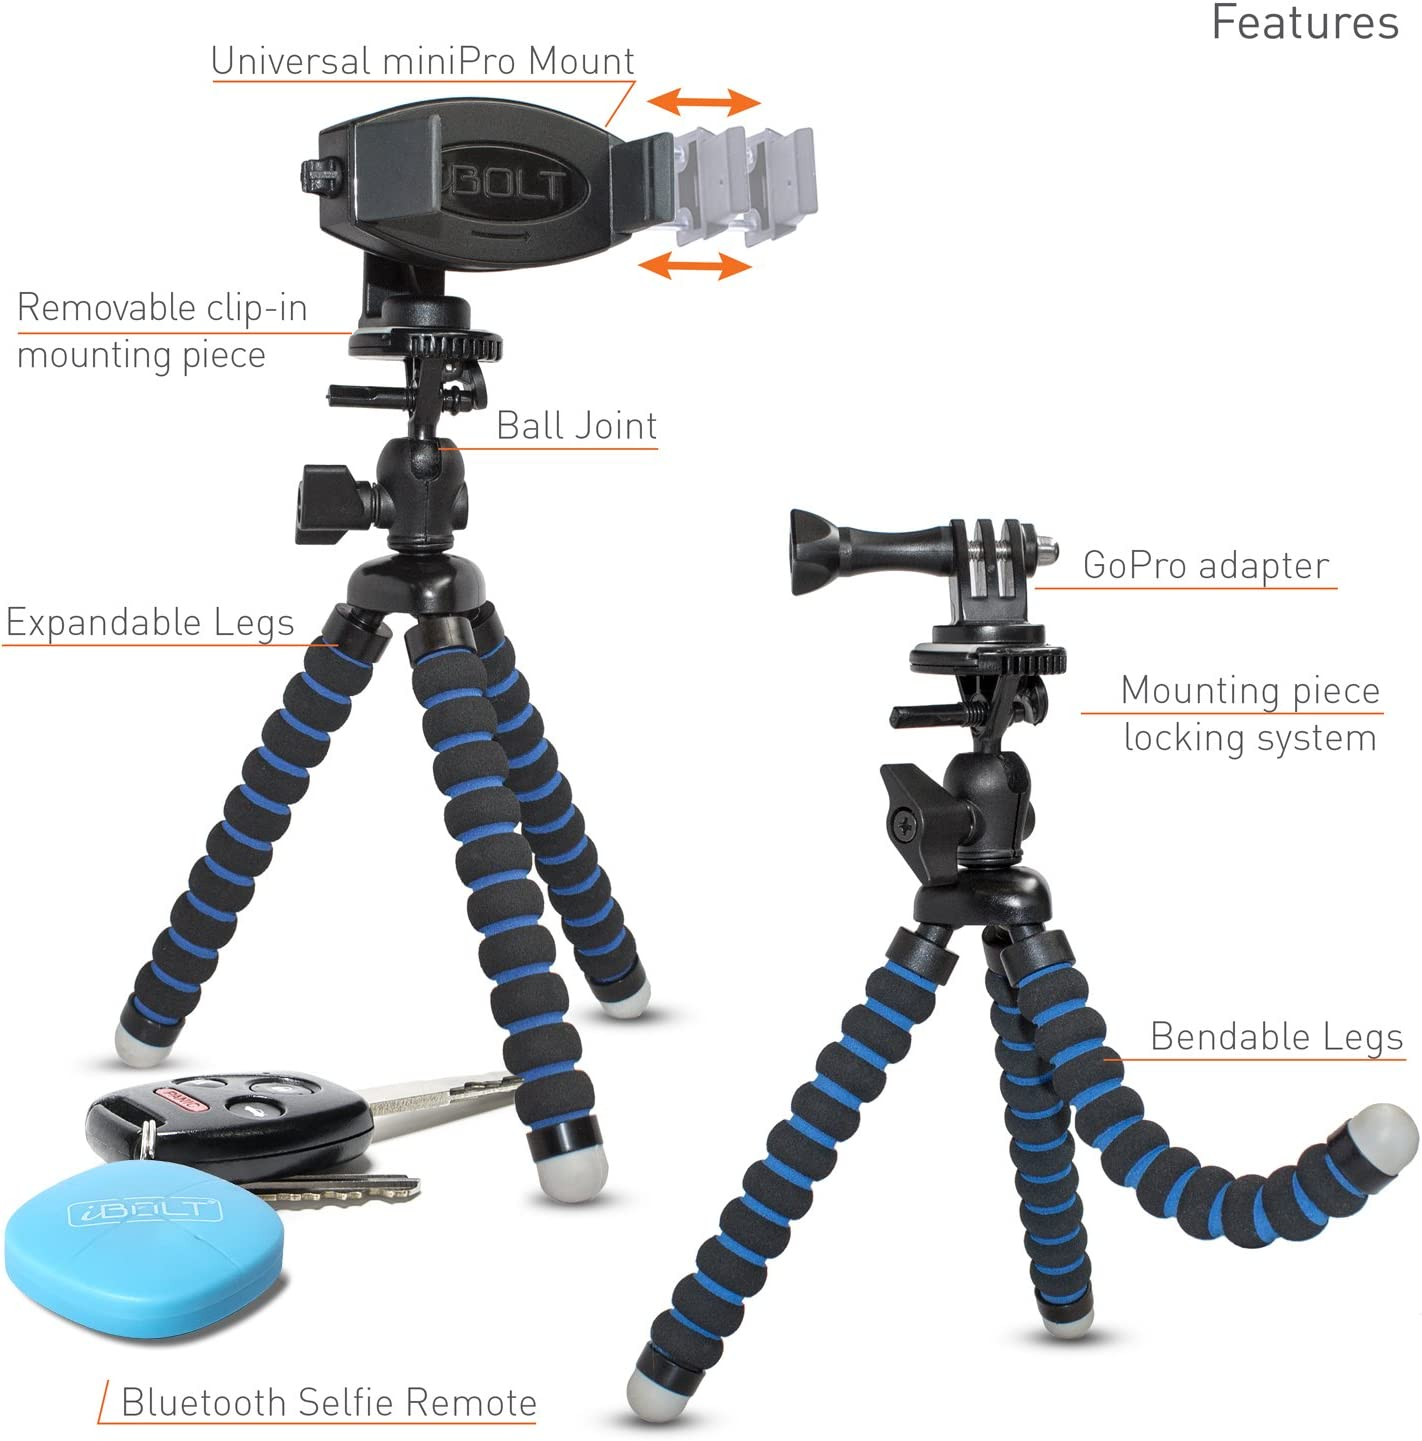 and Universal Selfie Remote- Black iBOLT Sonic Tripod miniPro-IBUS-33816 Flexible 3-in-1 Tripod for Smartphones and GoPros- with Smartphone Holder Cameras GoPro Adapter Camera Screw Adapter